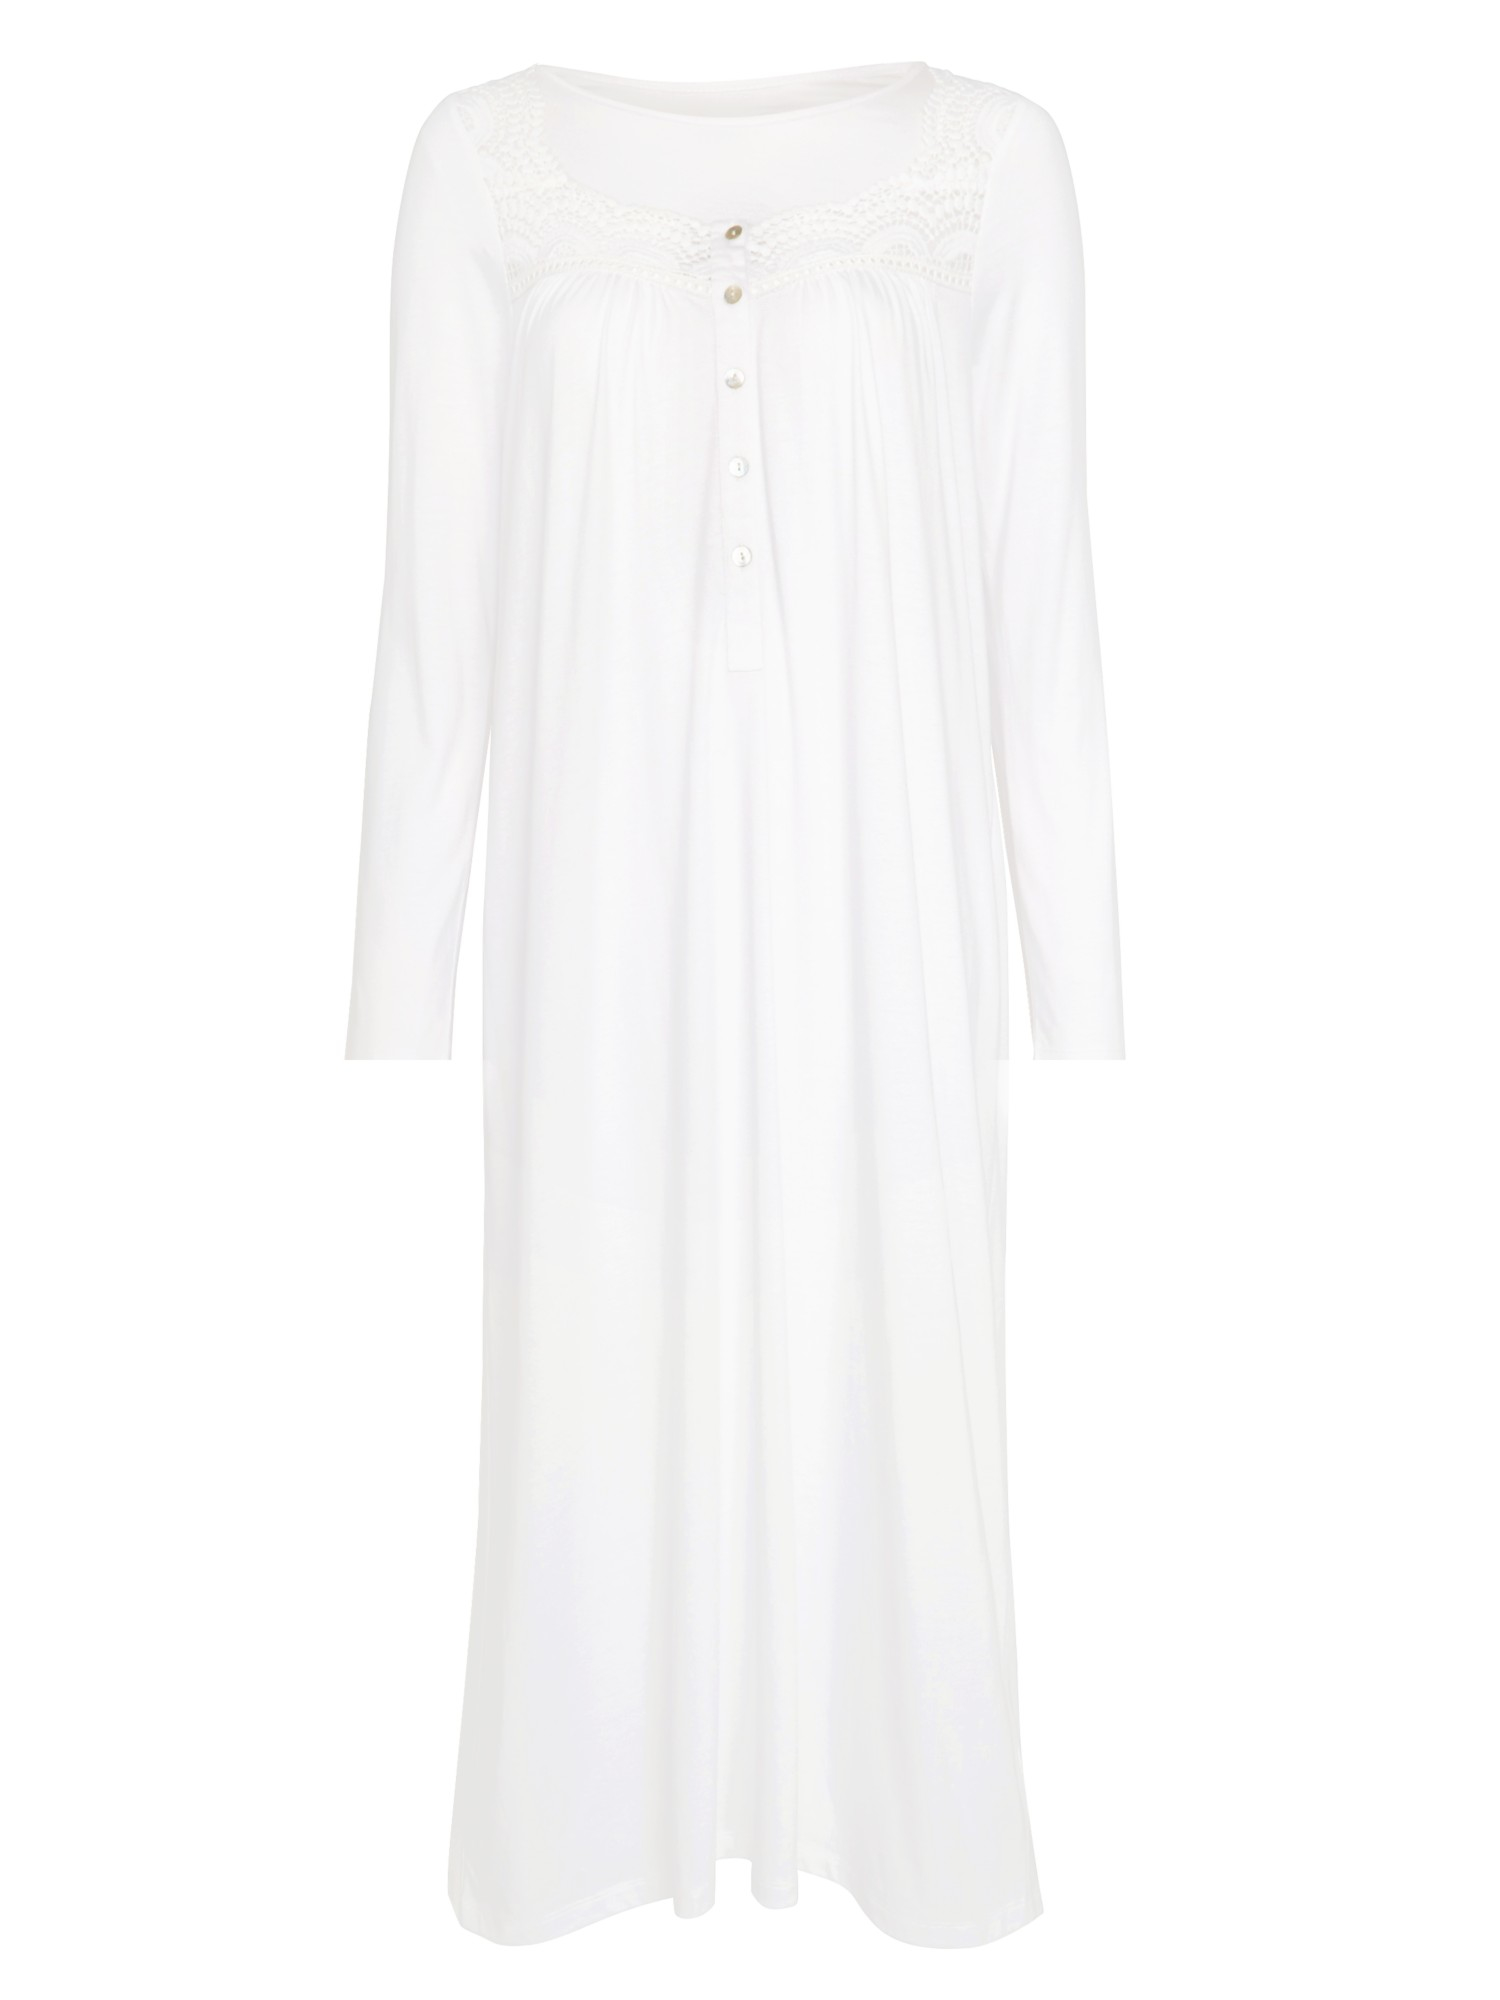 4b4ec34621 John Lewis Lace Trim Long Sleeve Nightdress in White - Lyst